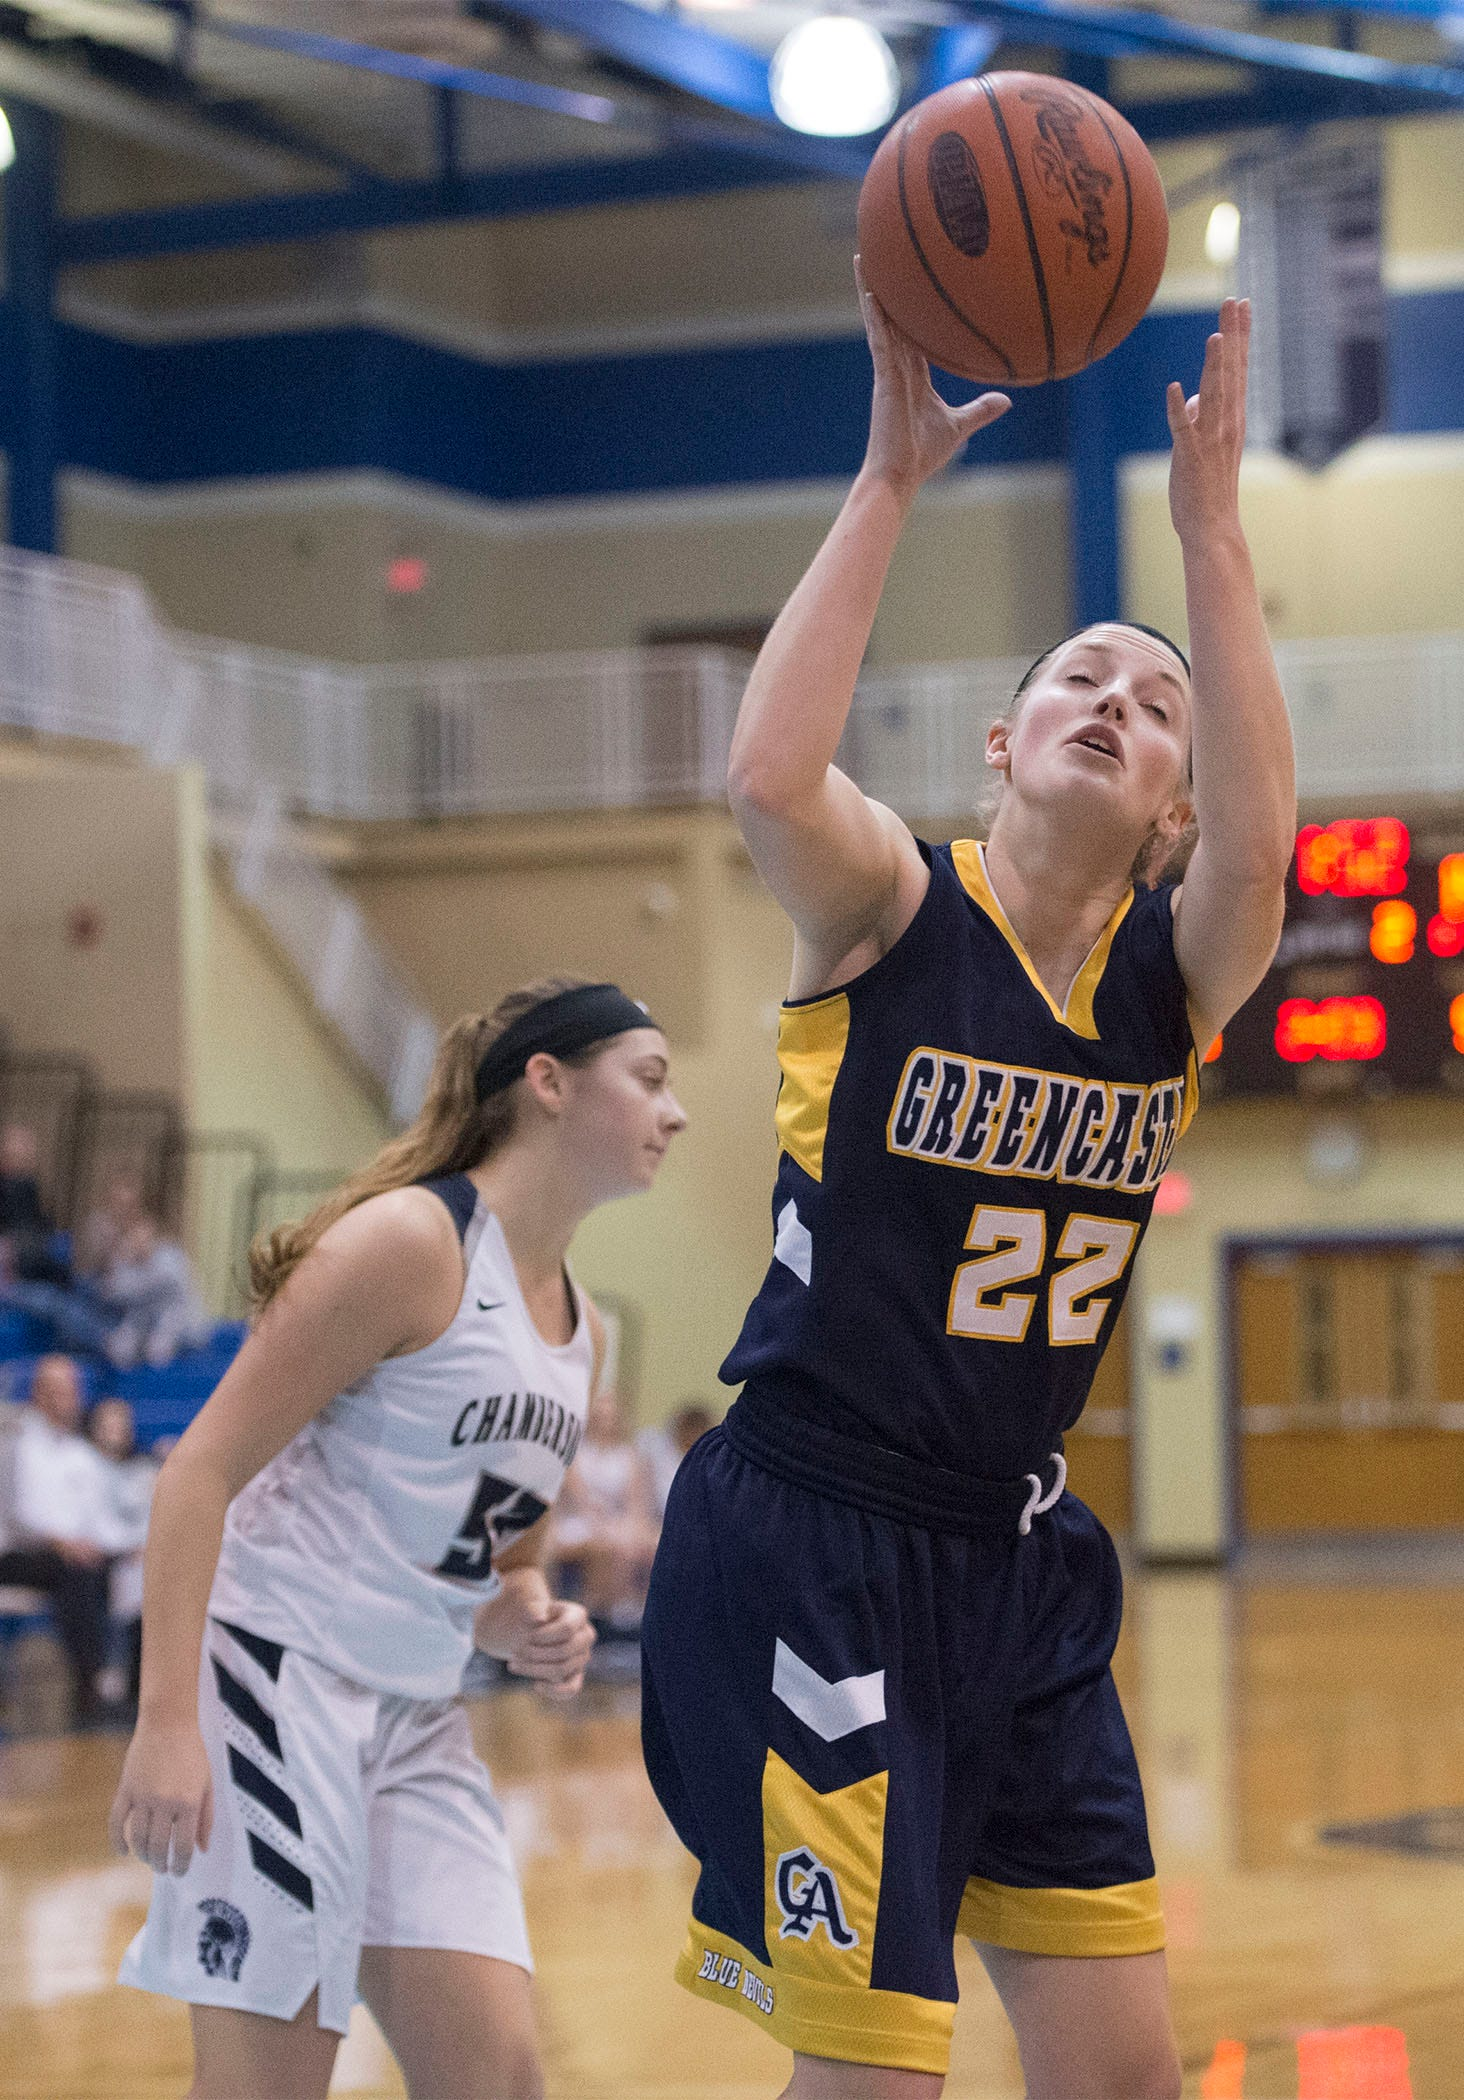 Lydia Crist of Greencastle pulls down a rebound. Chambersburg played Greencastle during the finals at Franklin County Tip-Off Tournament, Saturday, Dec. 8, 2018.